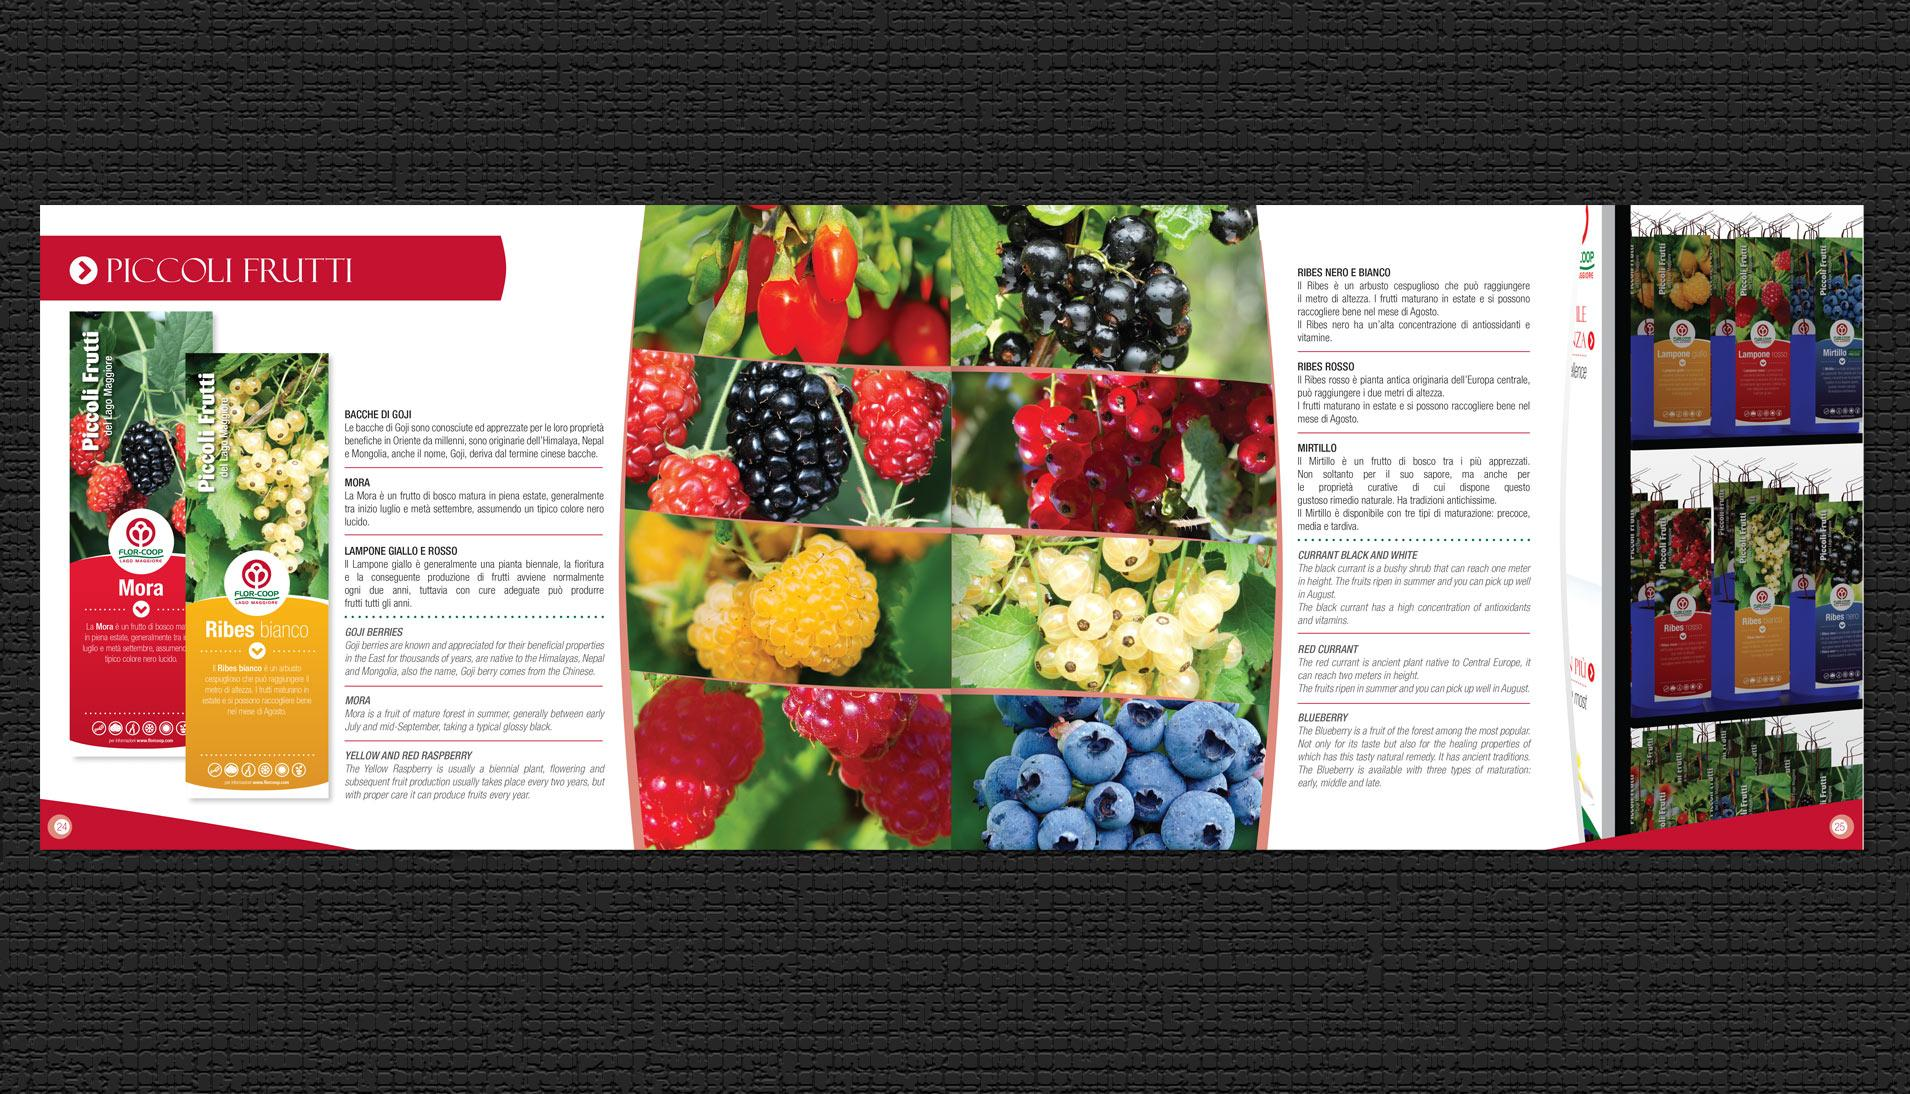 WarningStudioComunicazione florcoop brochure 04